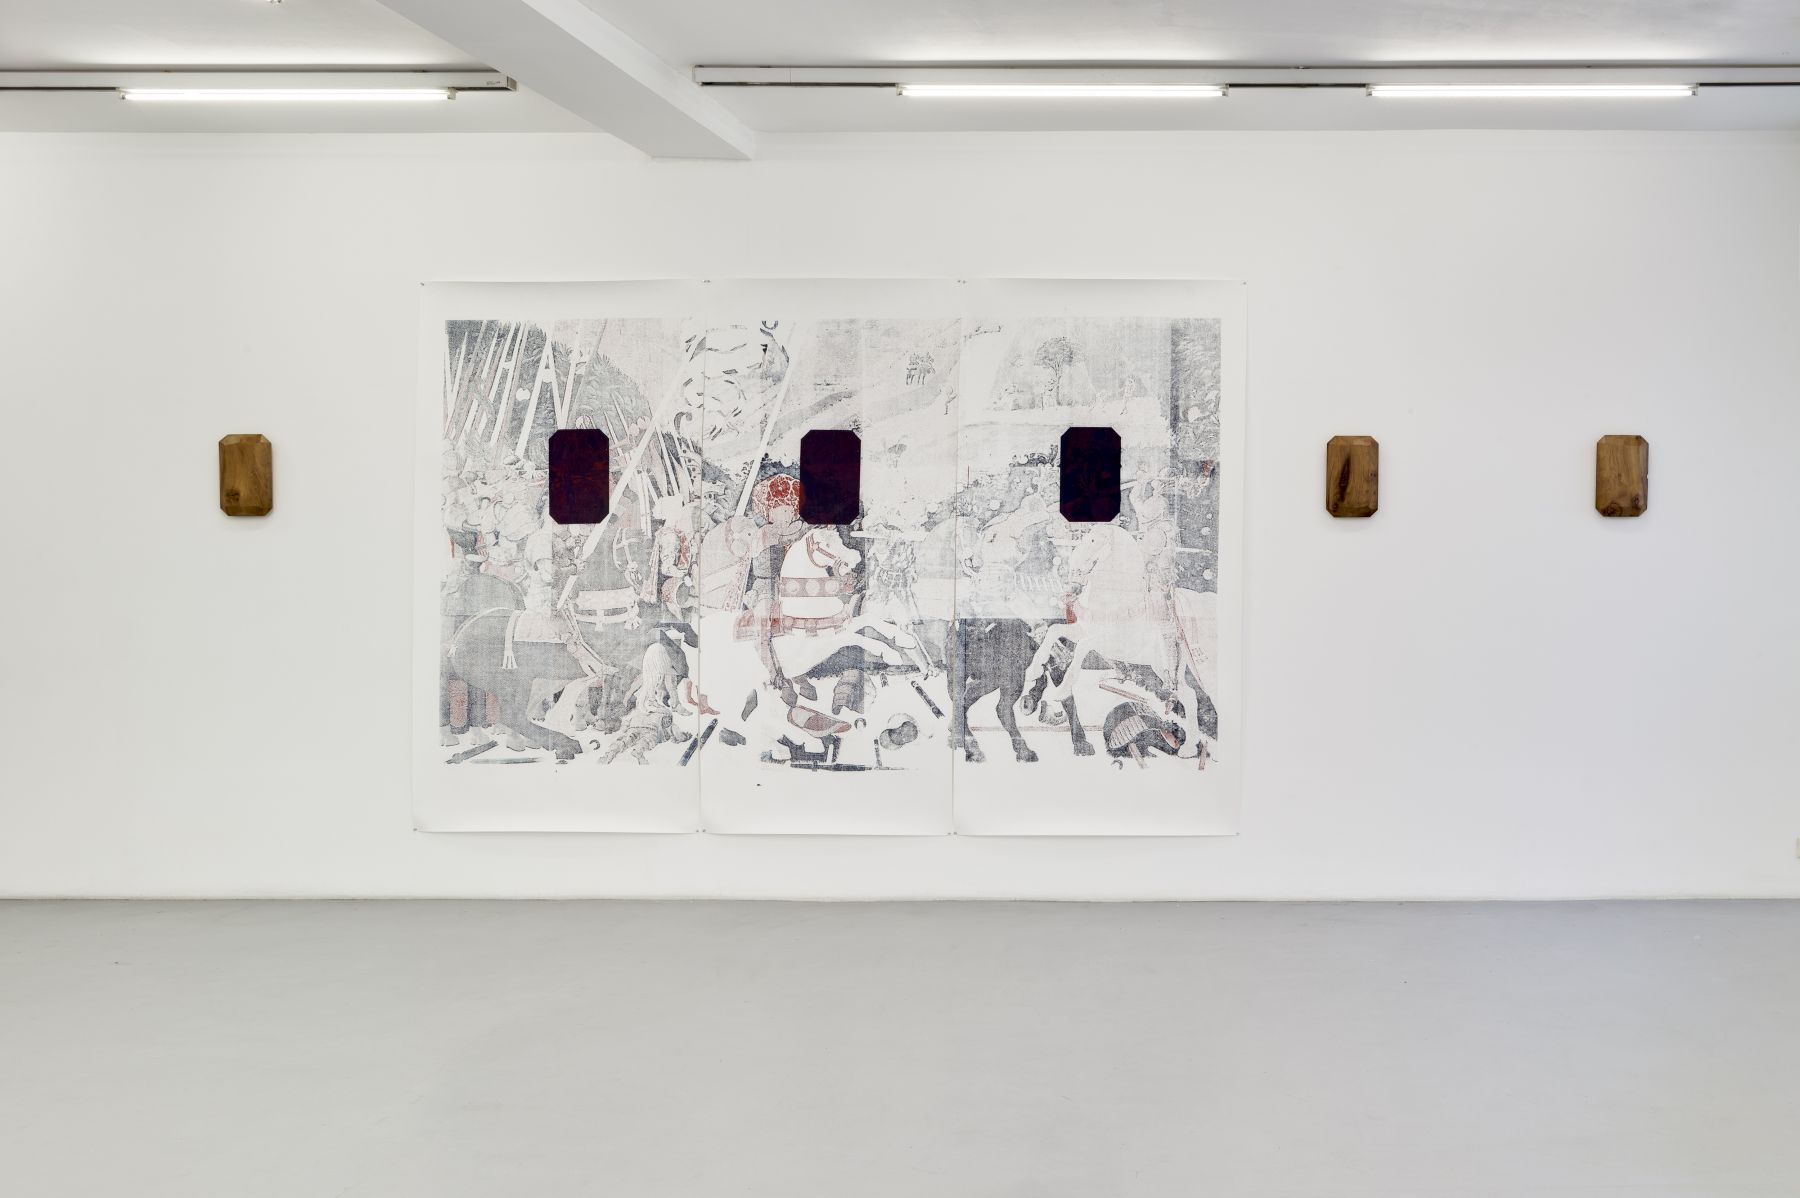 Lucy Skaer: Blanks and Ballast– installation view 3